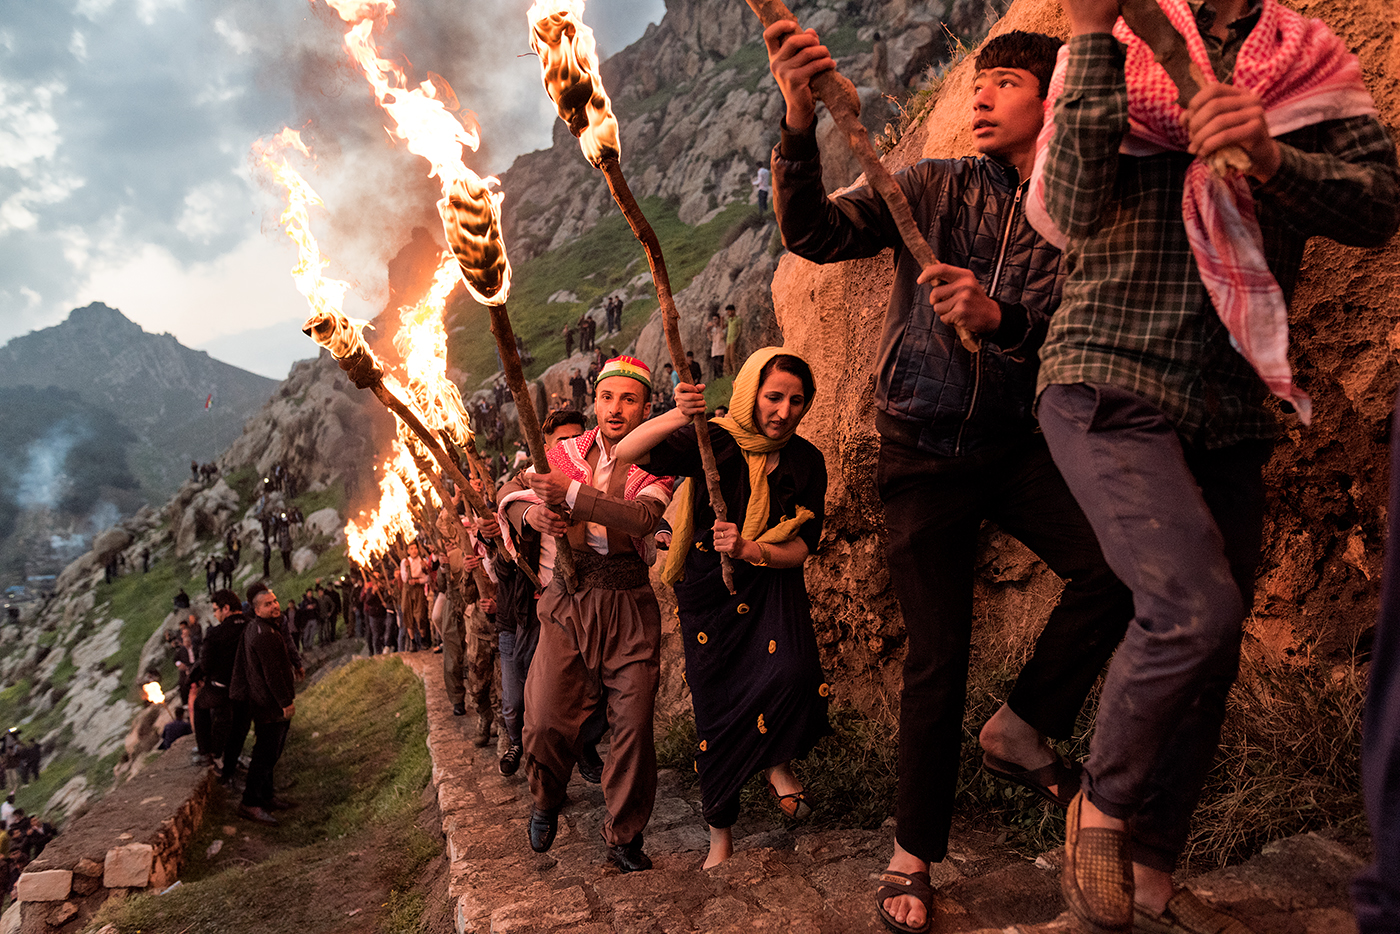 The ancient fire ceremony of Newroz marking the rite of Spring and the Kurdish New Year in the mountain city of Akre in northern Iraq.  A procession of torchbearers is led to the highest peak overlooking the city.  Fireworks and gunfire echo about in a celebration that has had special meaning since the fall of Saddam Hussein.  Previous to the American occupation in 2003, these people lived under the threat  of indiscriminate slaughter and genocide.  Now for the first time in centuries, they hold the beginnings of their own nation and the possibility of self-determination.  While still considered a province of Iraq, Kurdistan is the proud homeland of a people that have lived dangerously as outsiders for most of their history.